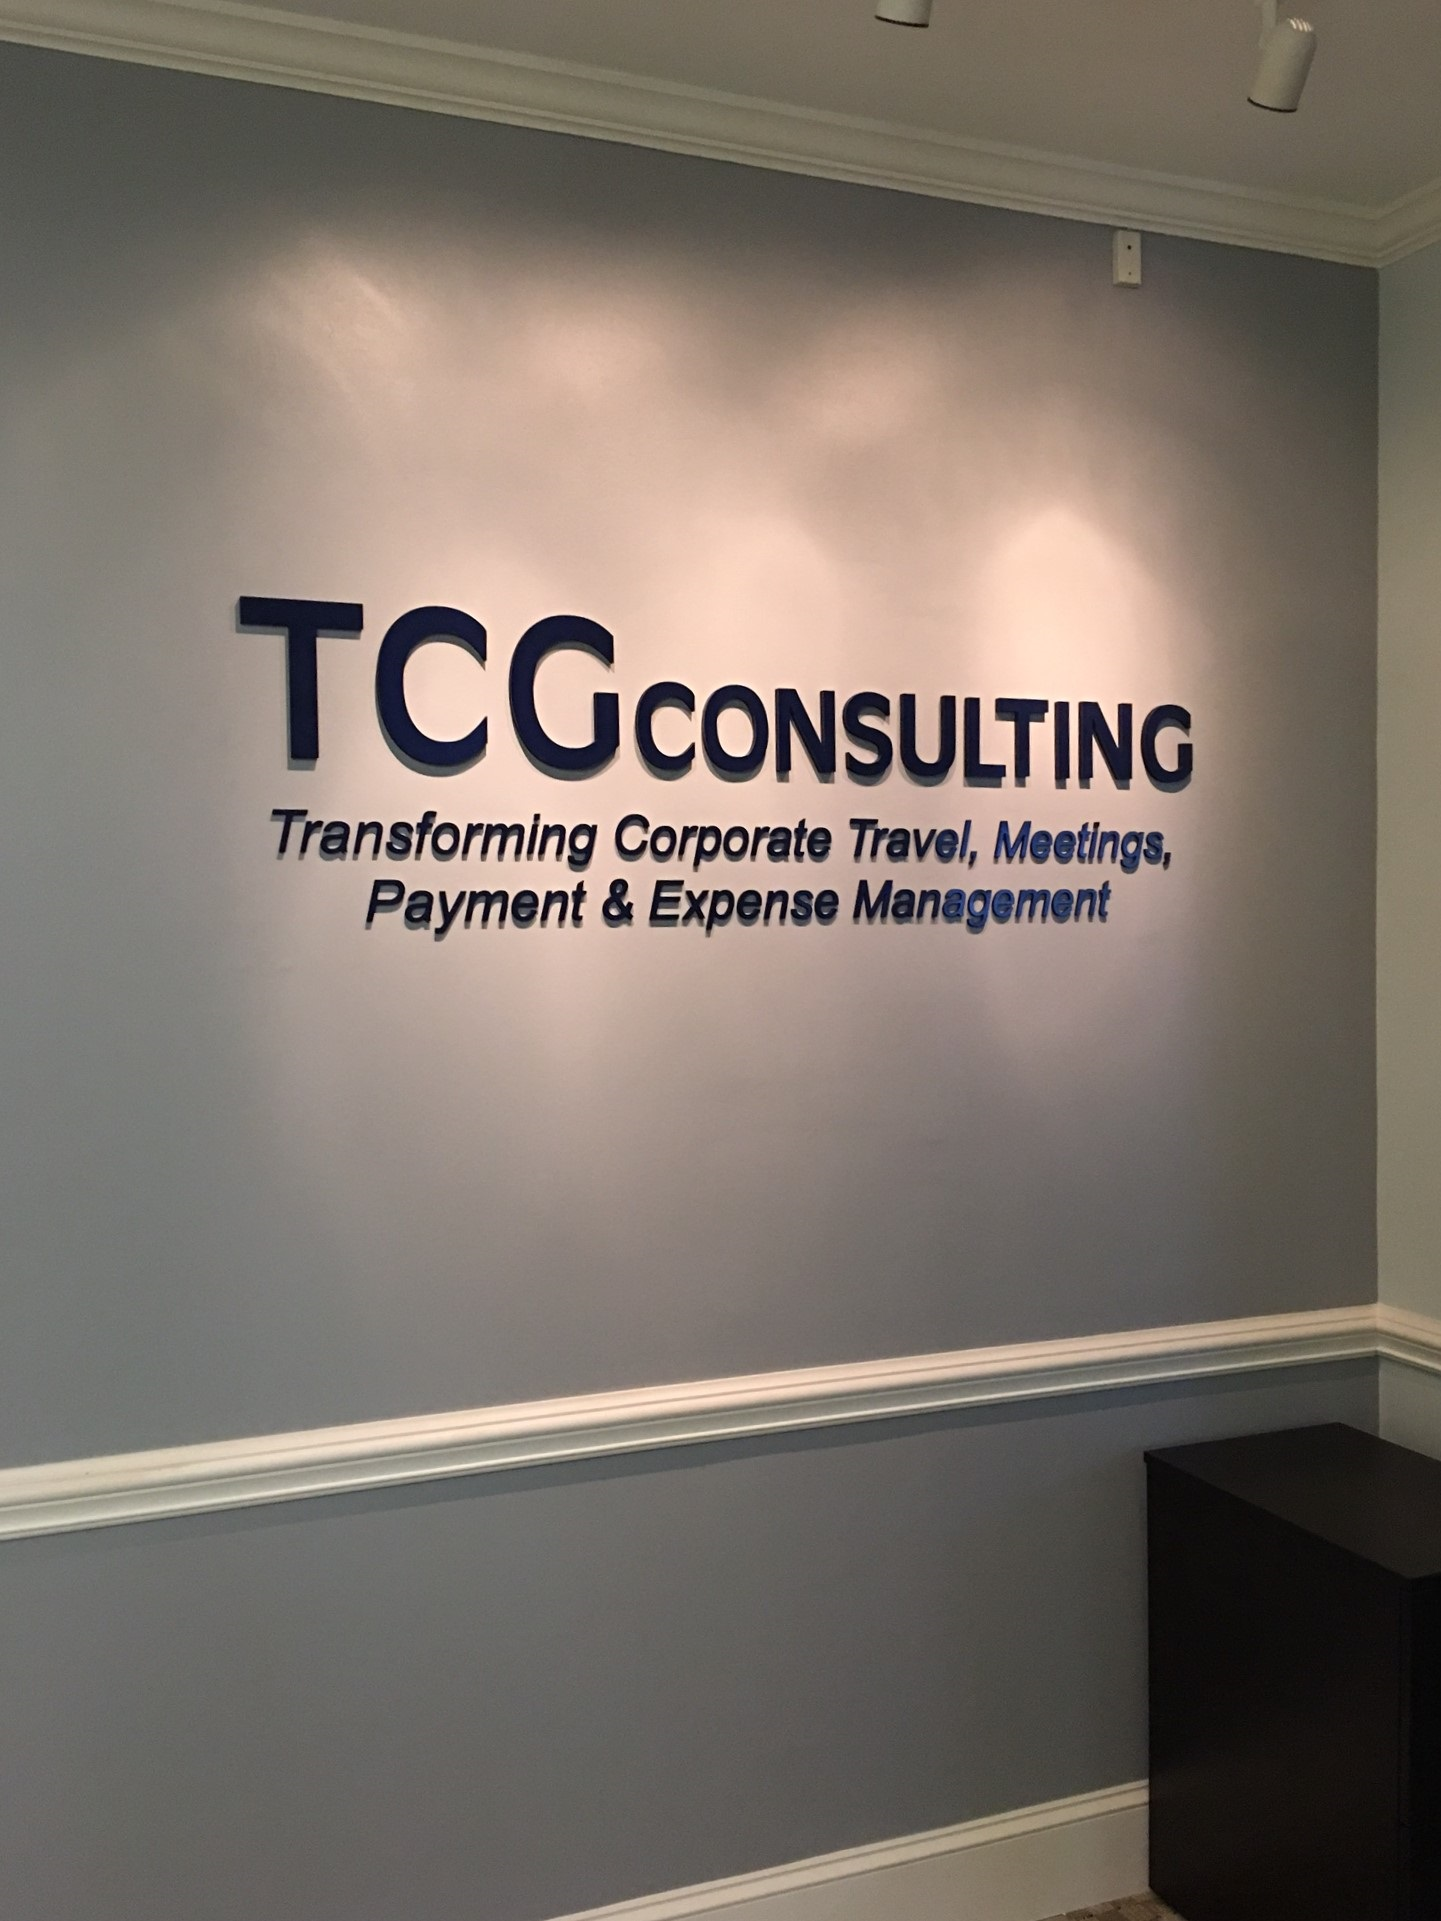 Check Out This Interior Signage For Tcg Consulting Of Charlotte By Jc Signs Jc Signs Charlotte